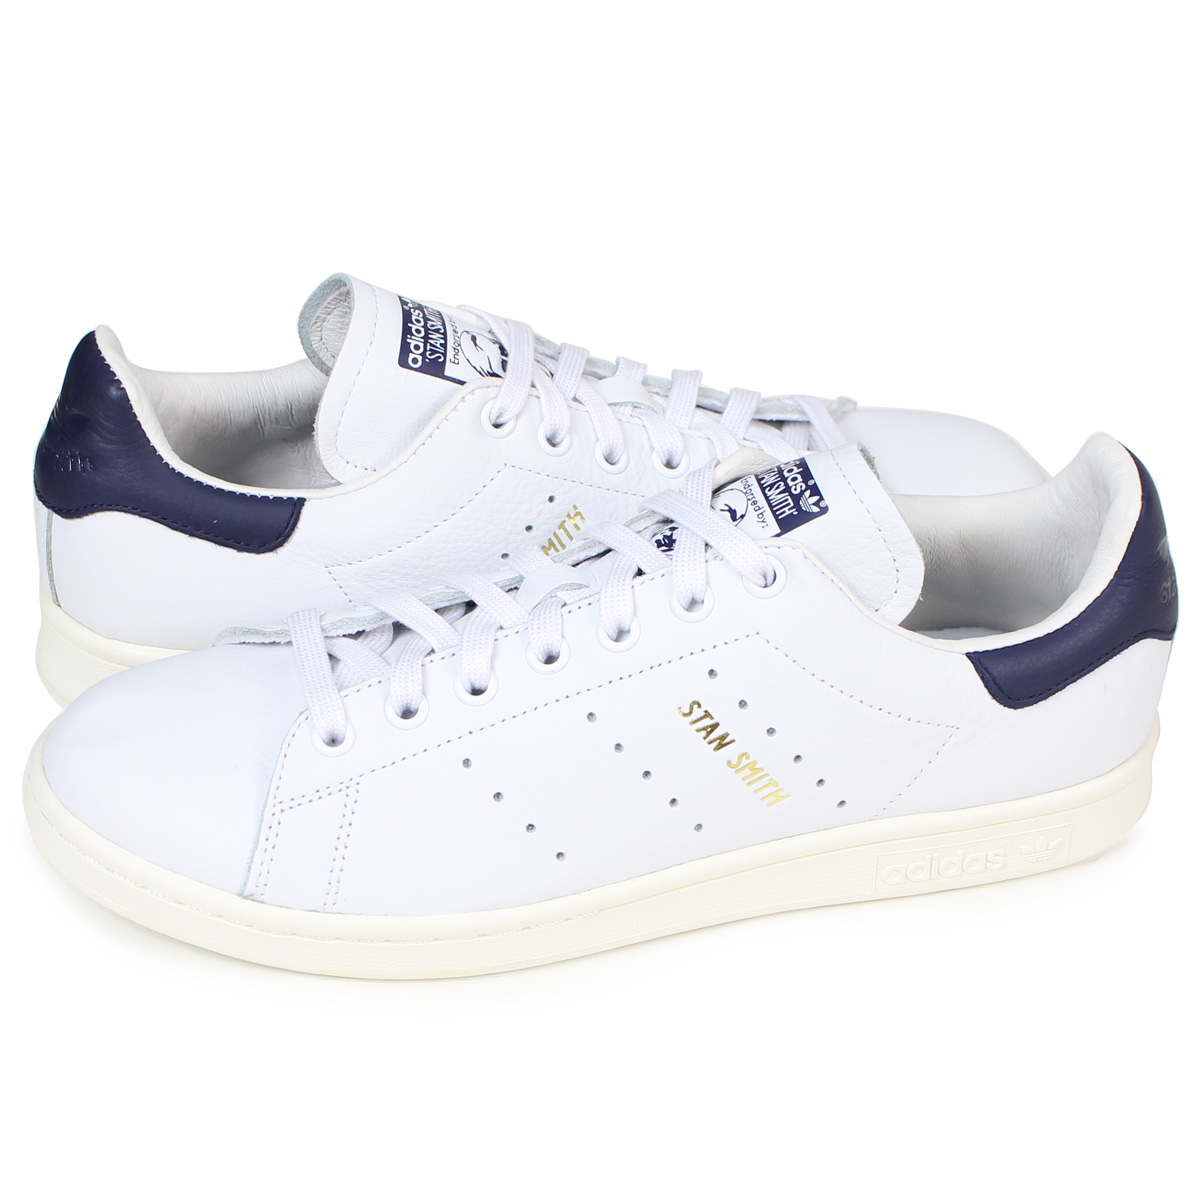 Adidas 'Stan Smith' sneakers Men Shoes,adidas shoes sale